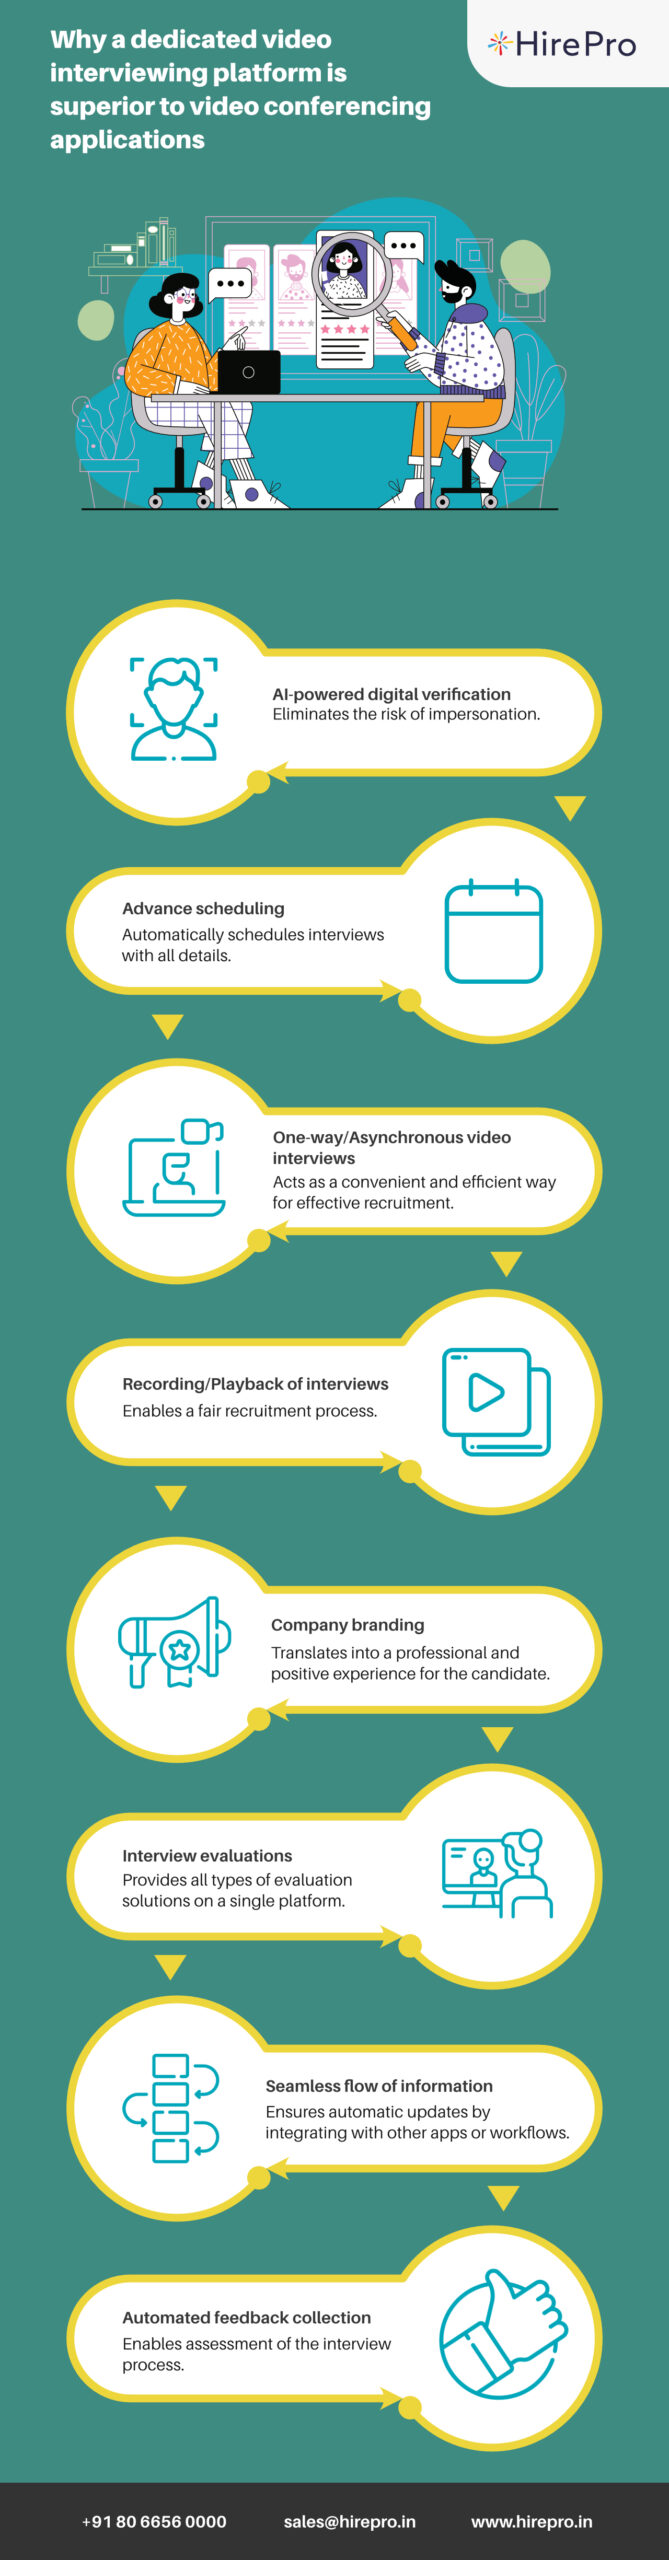 Why a dedicated video interviewing platform is superior to video conferencing applications